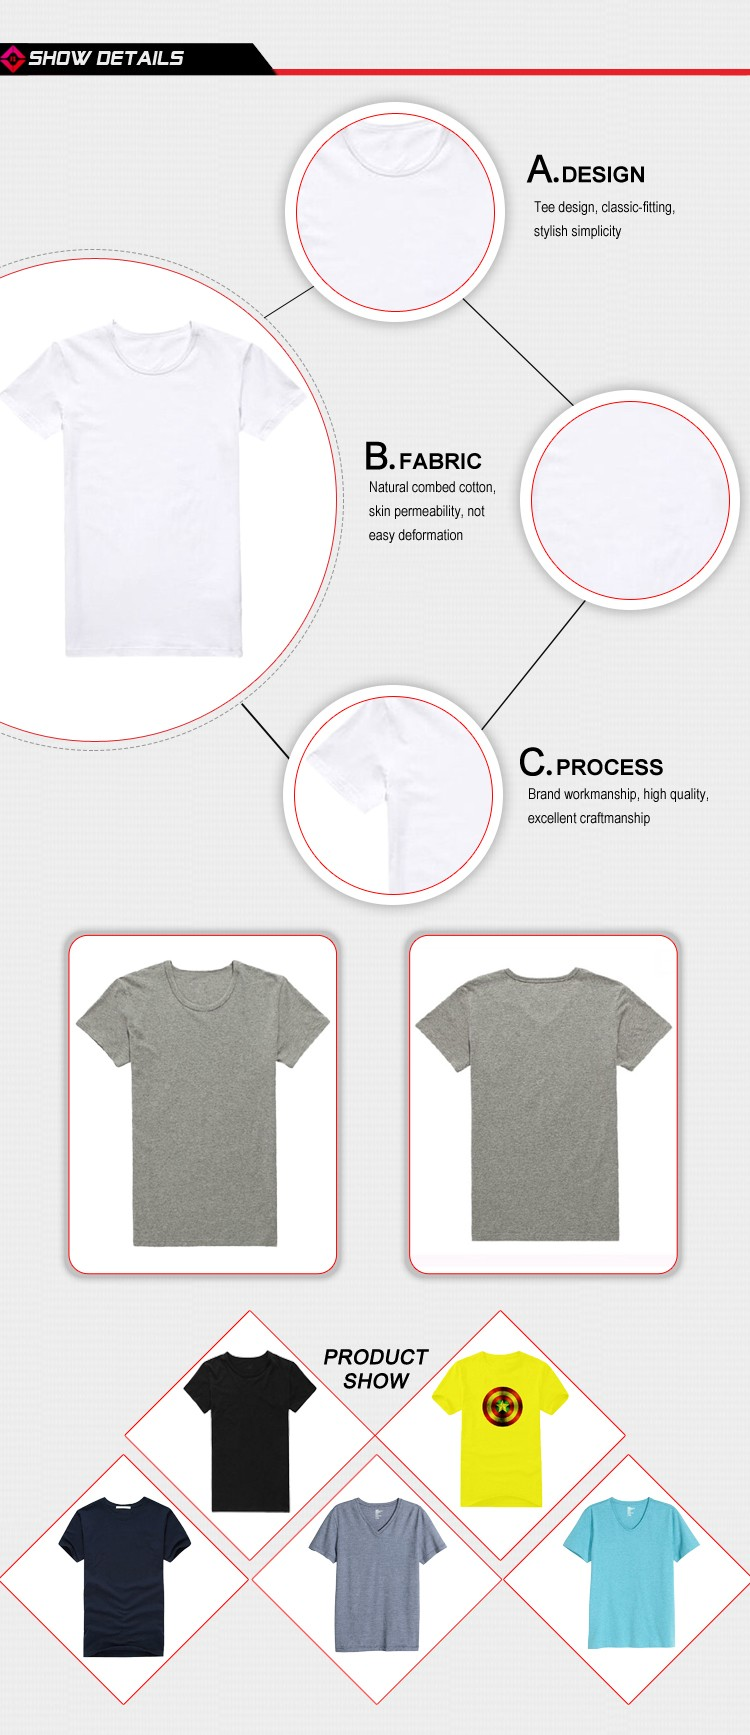 Design your own t shirt good quality - Being Human T Shirt Design Your Own T Shirt International Basic Source T Shirt